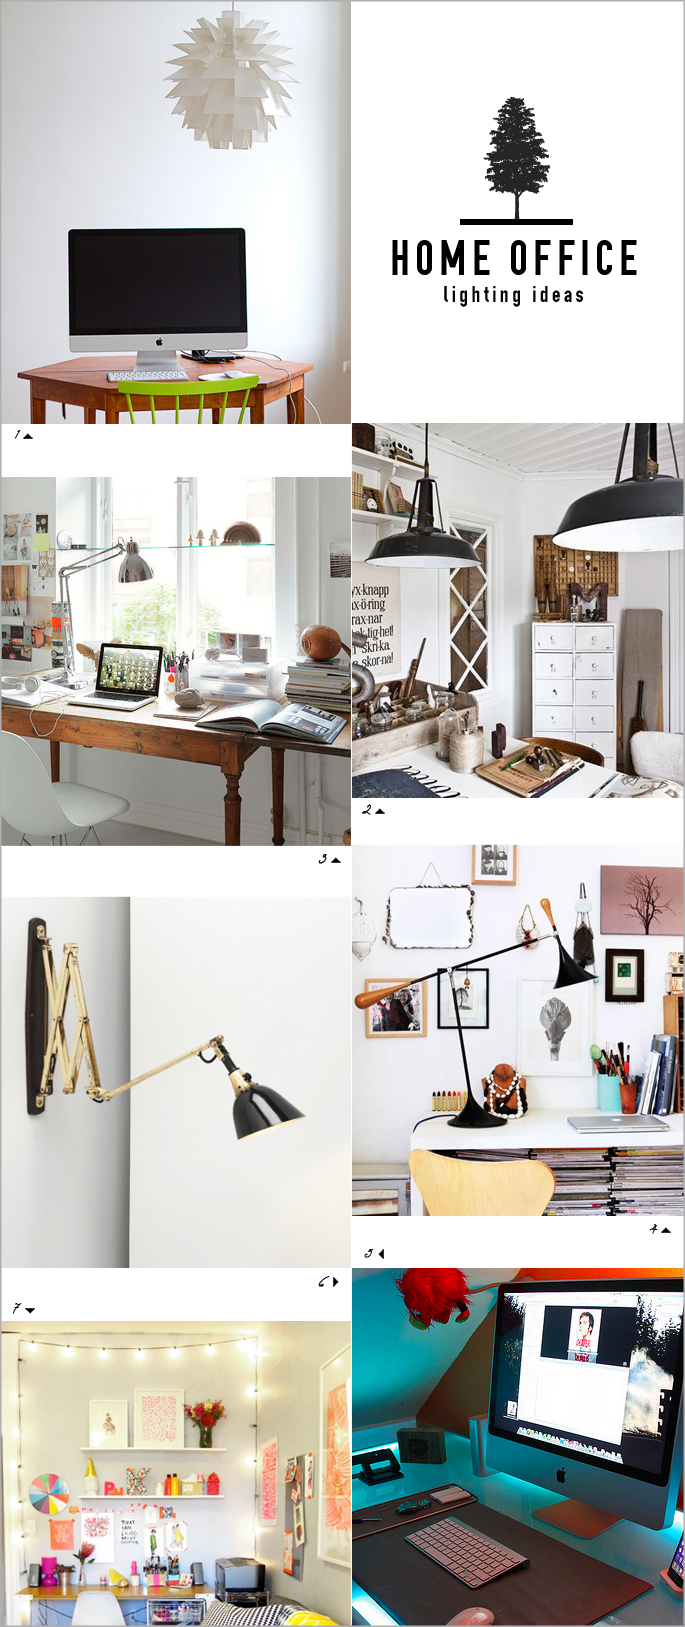 home office lighting ideas: how to be productive and creative in